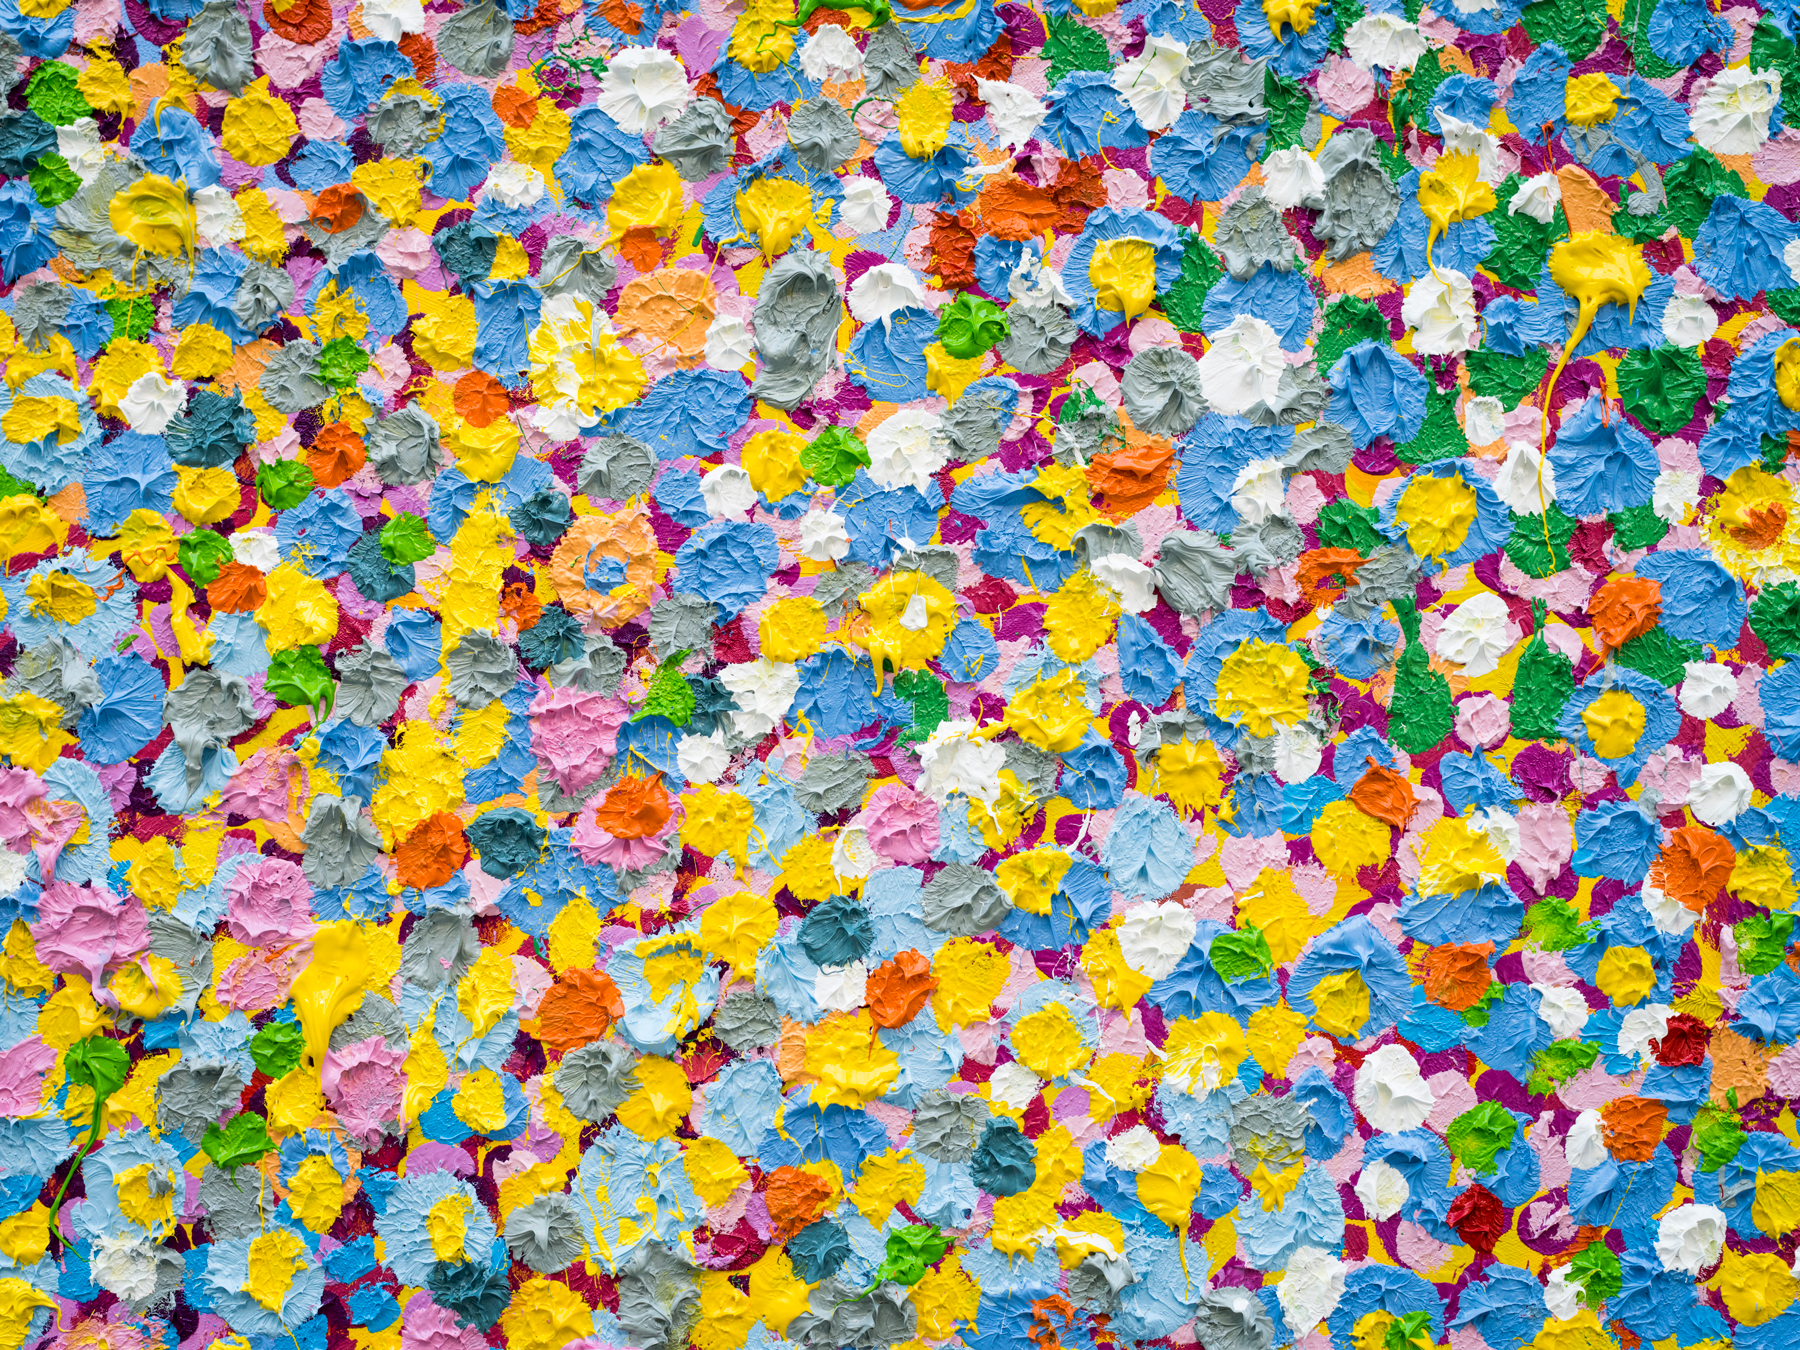 Damien Hirst S Latest Conceptual Feat Painting The Canvases Himself Artsy